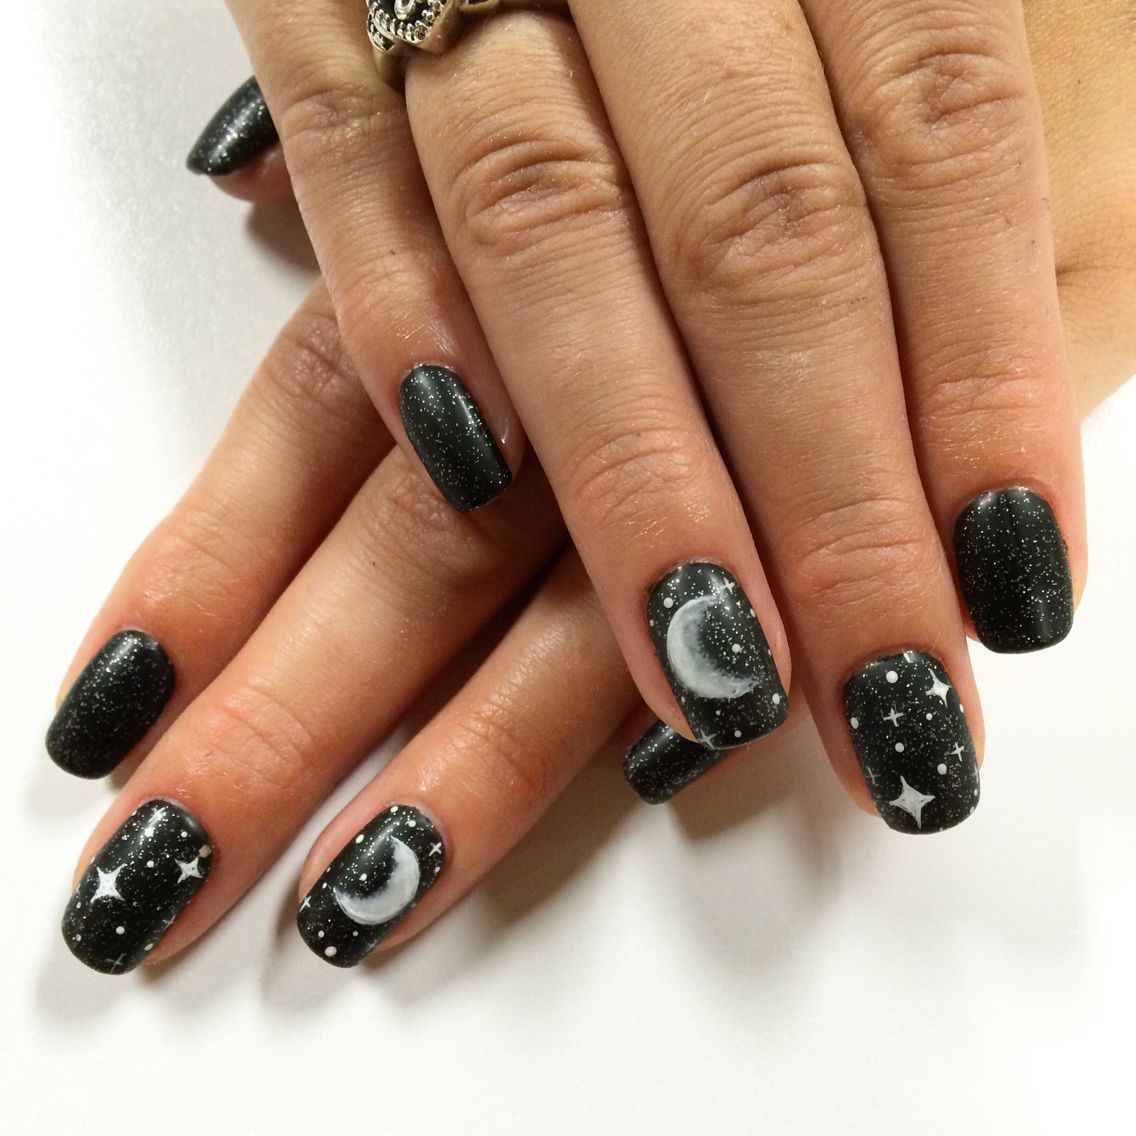 Moon and star nail art https://noahxnw.tumblr.com/post - Pin By Amy Rinker On Nails In 2018 Pinterest Nail Art, Nails And